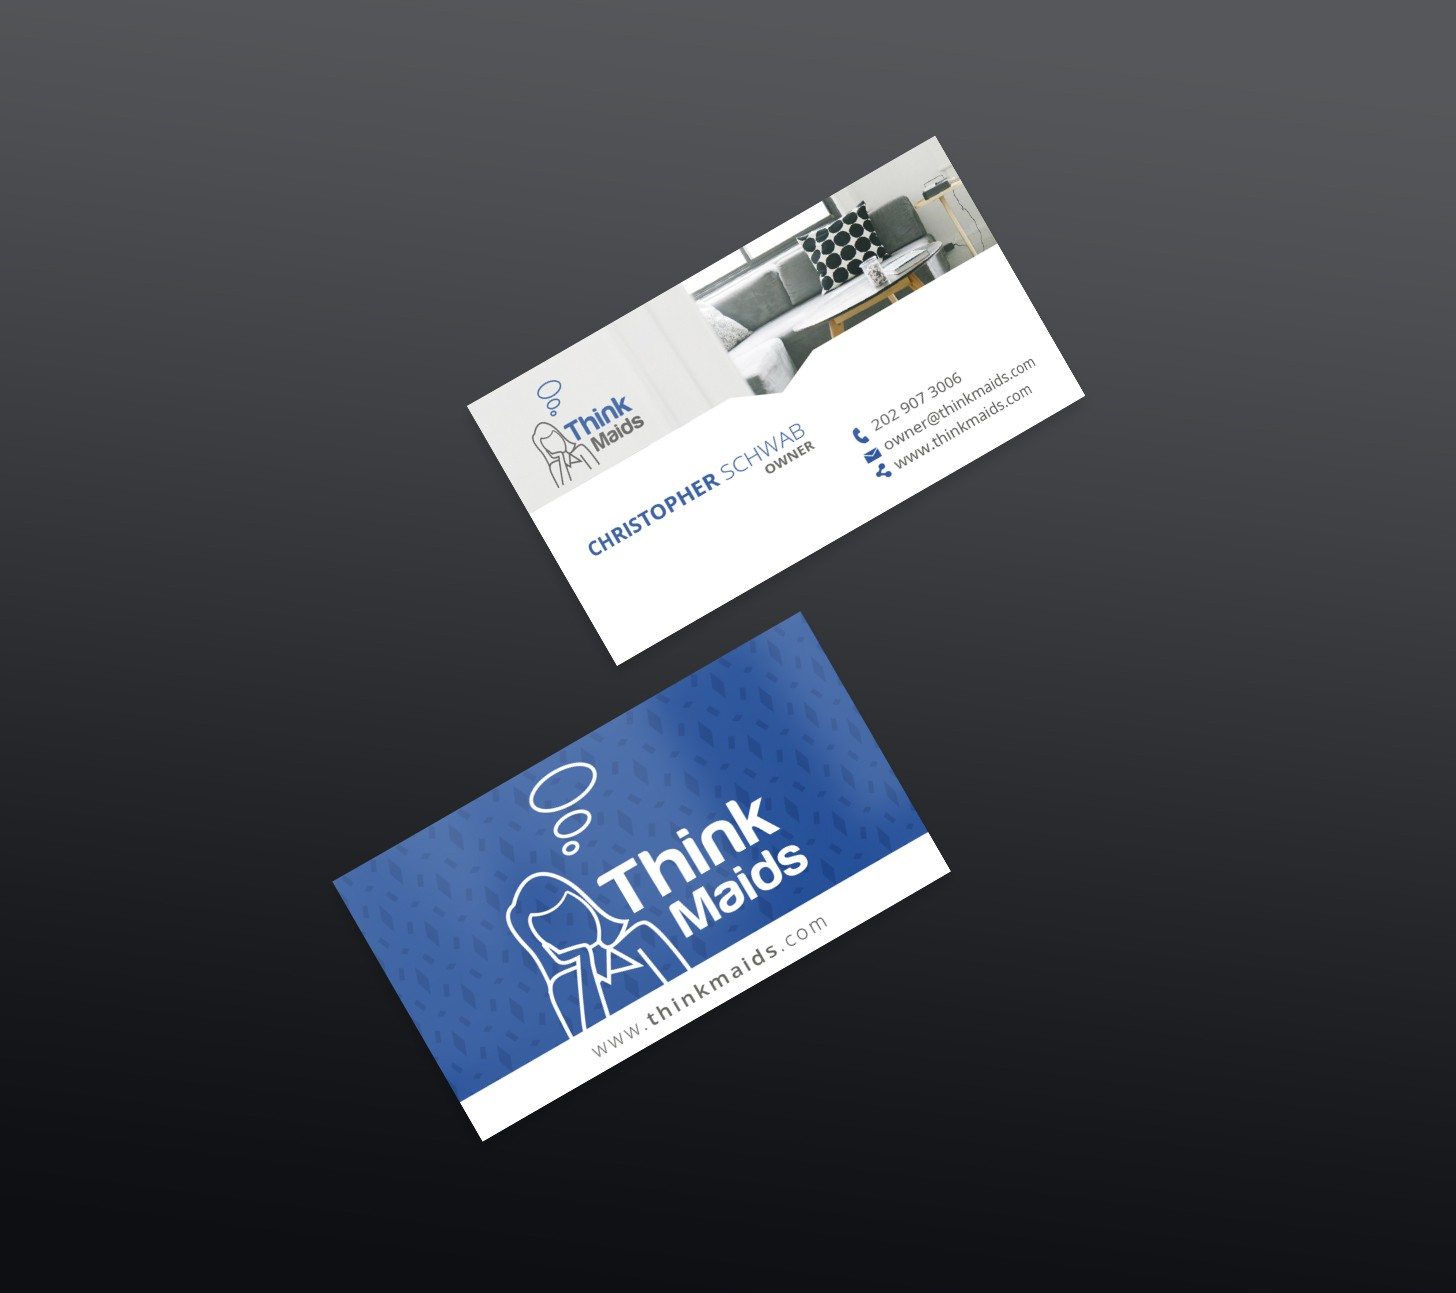 Create a beautiful, simple and clean business card for Think Maids cleaning service